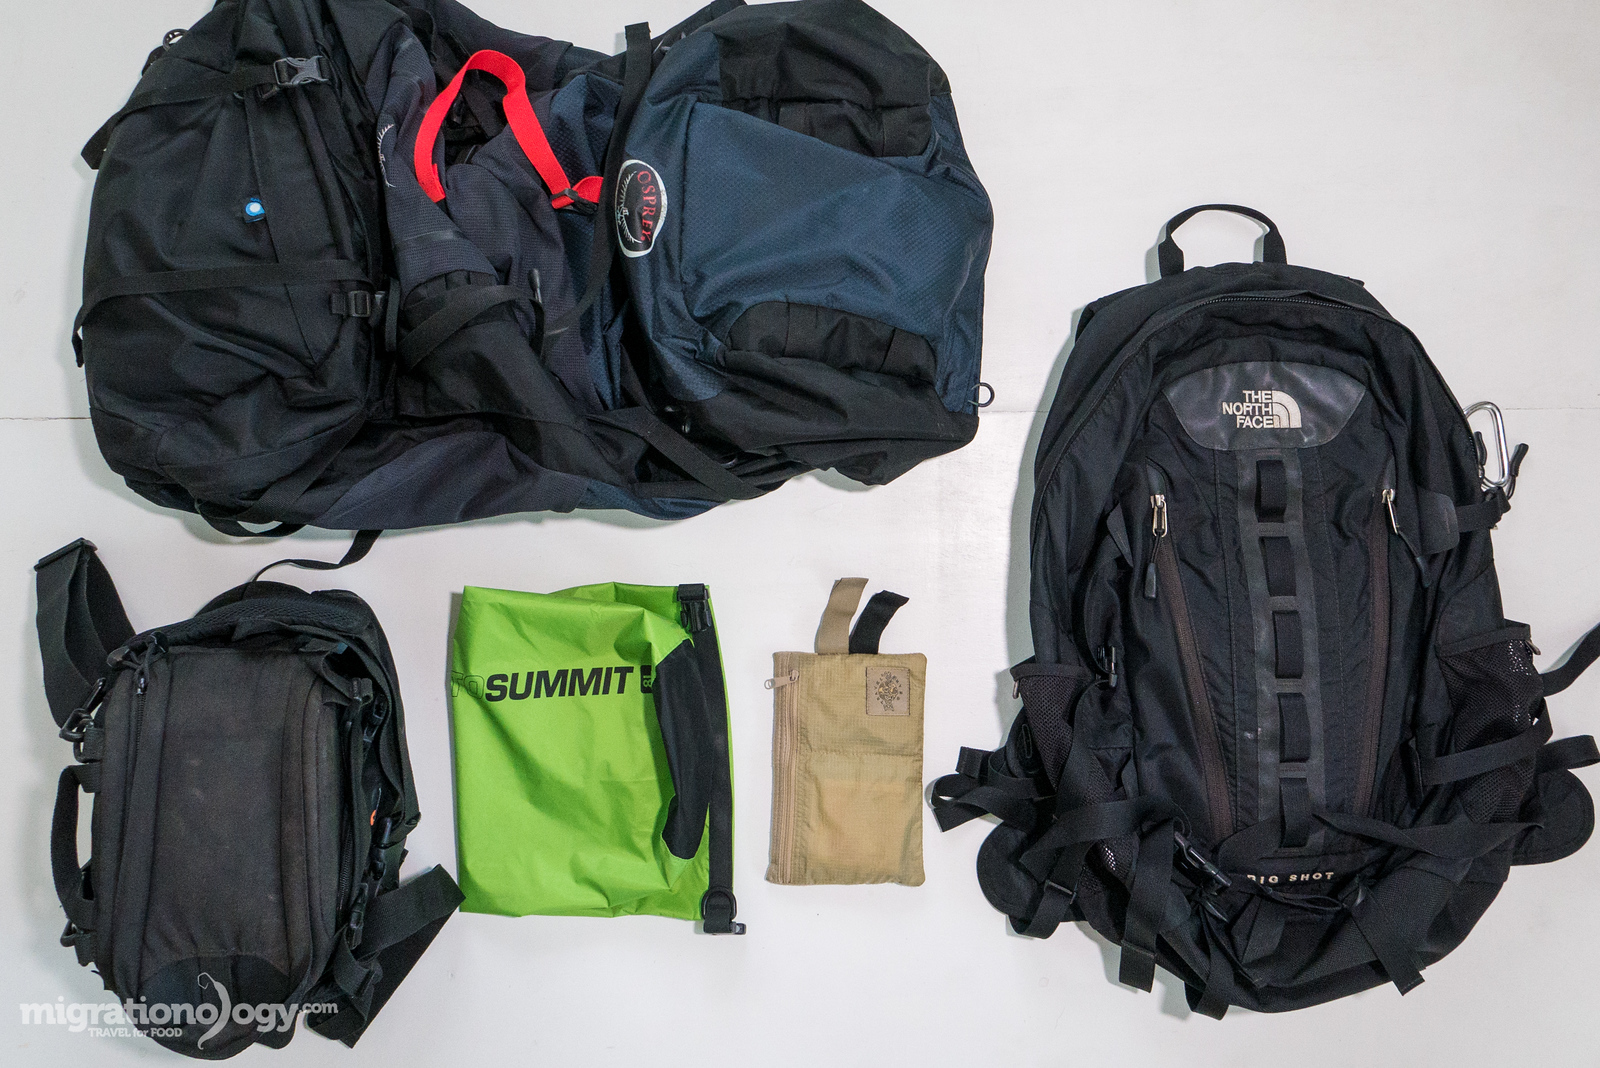 The bags and backpacks I use